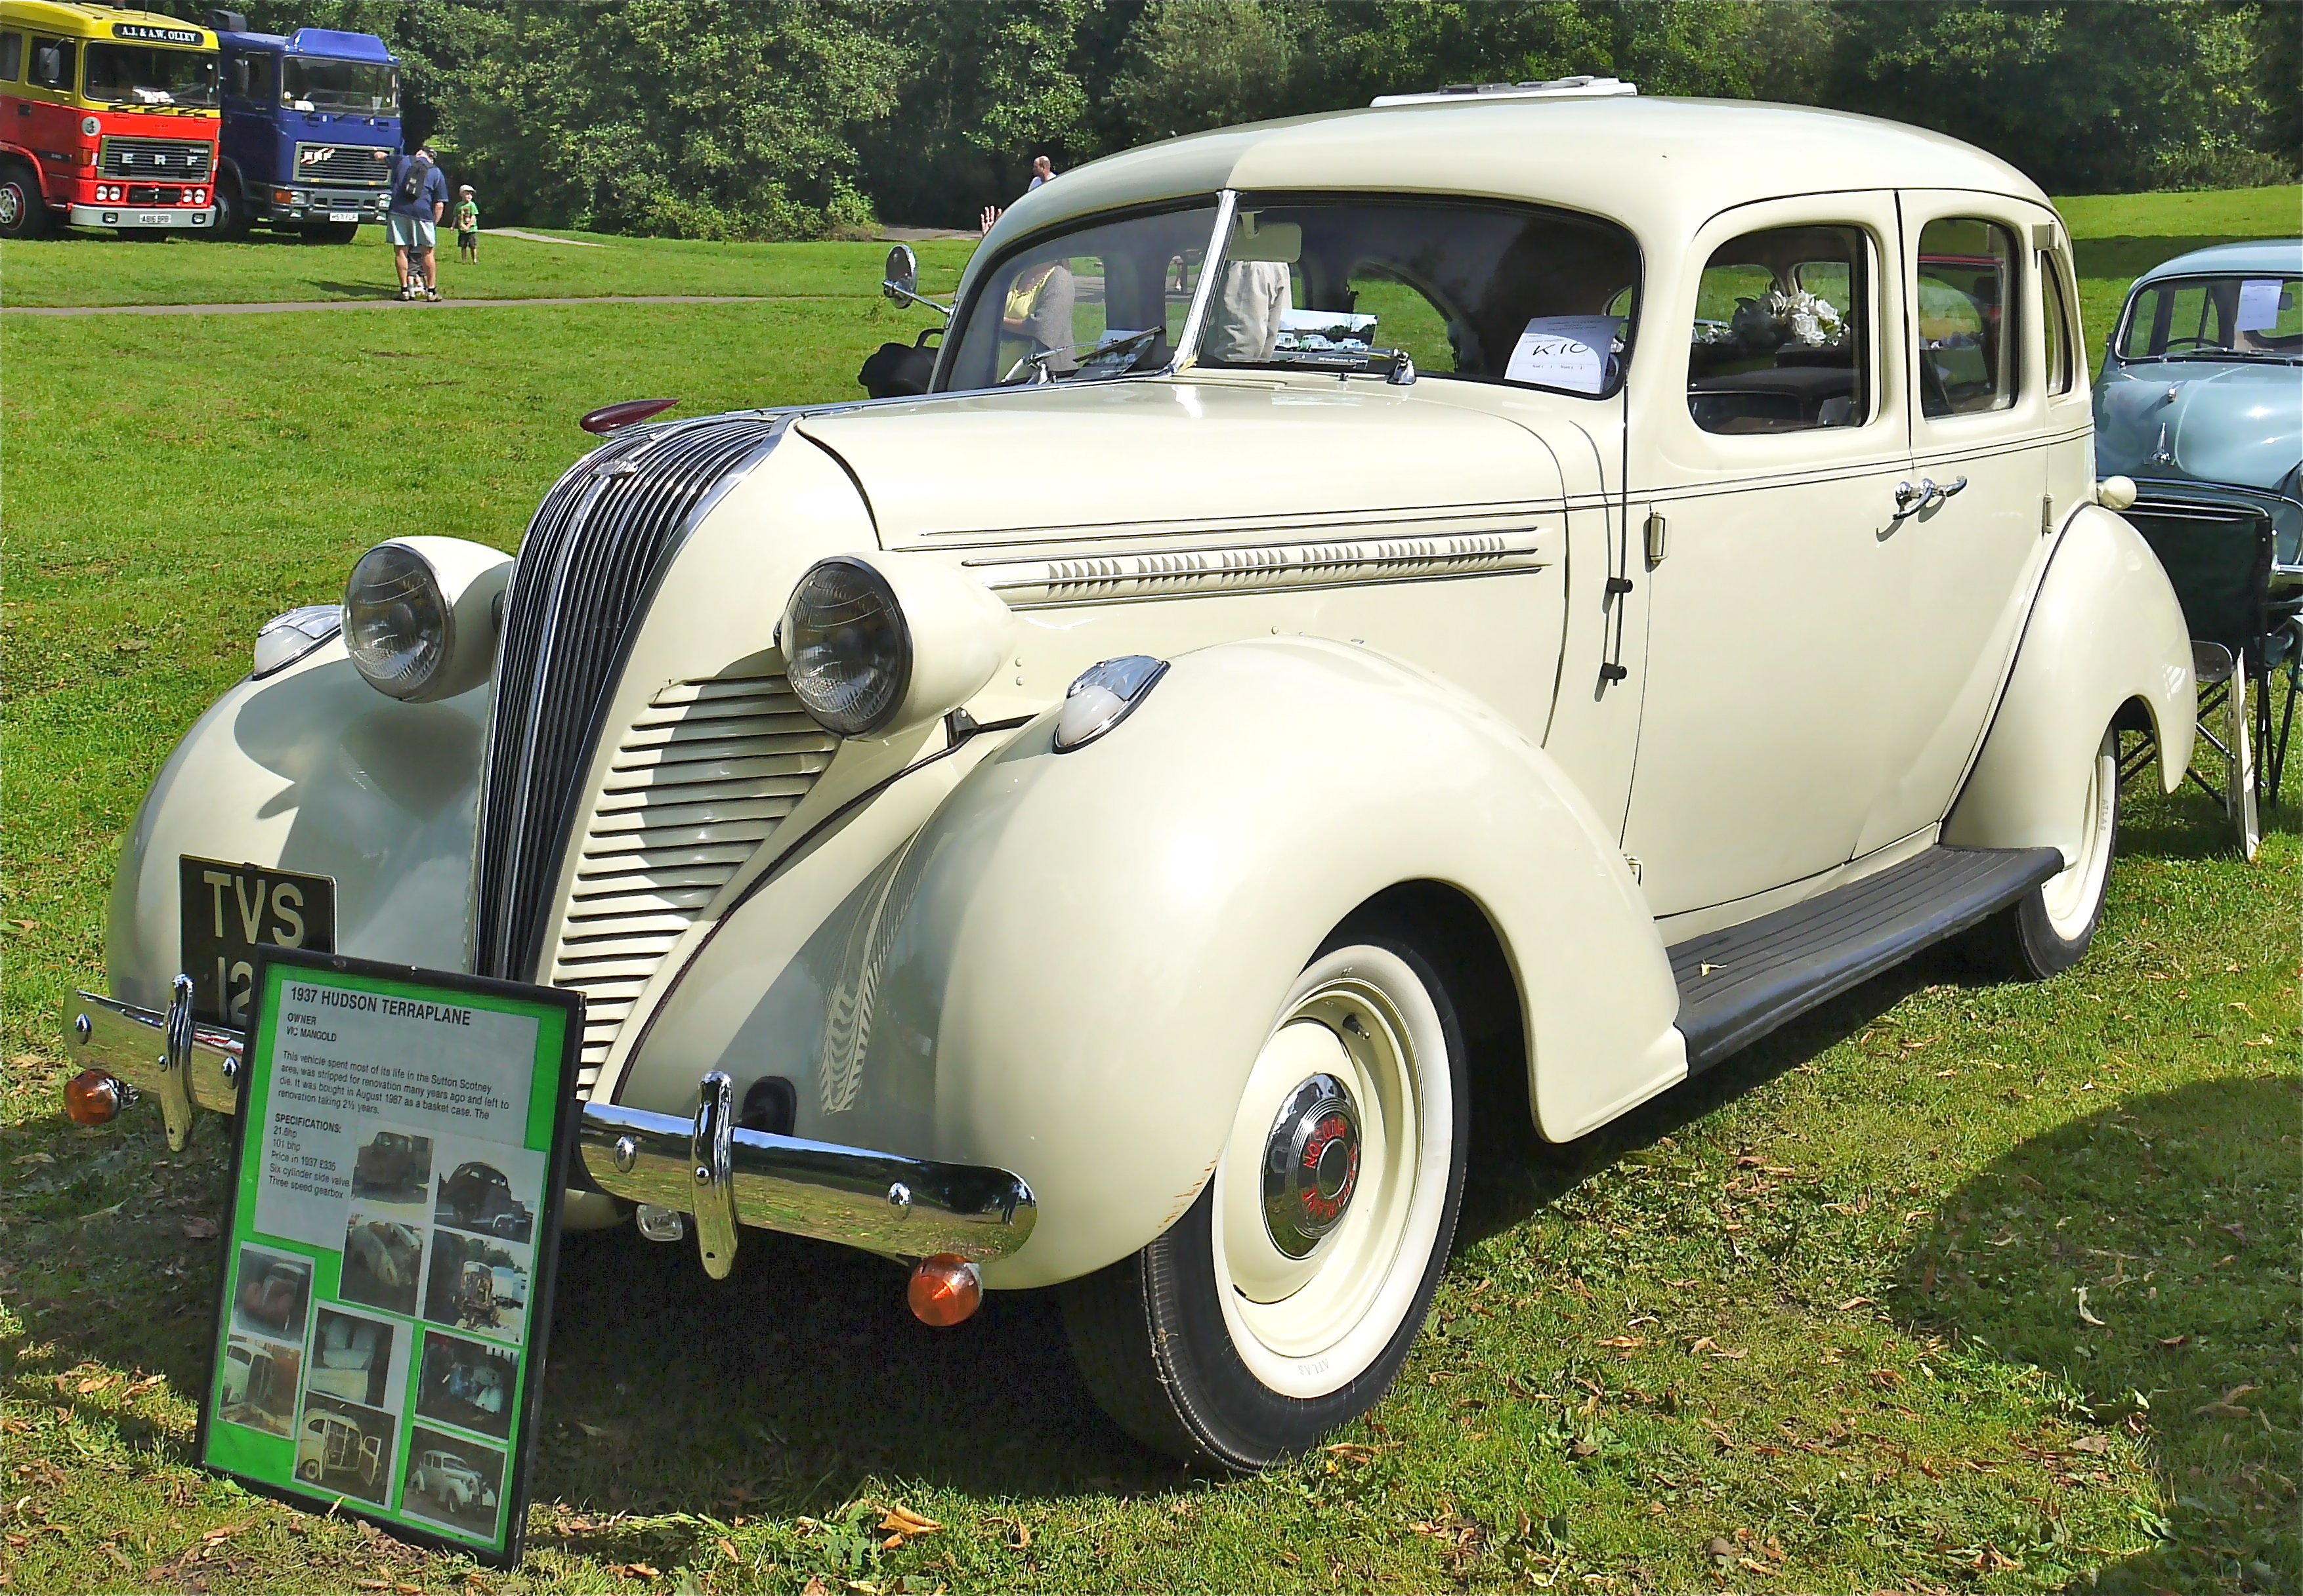 File:Hudson Terraplane 1937 - Flickr - mick - Lumix.jpg ...